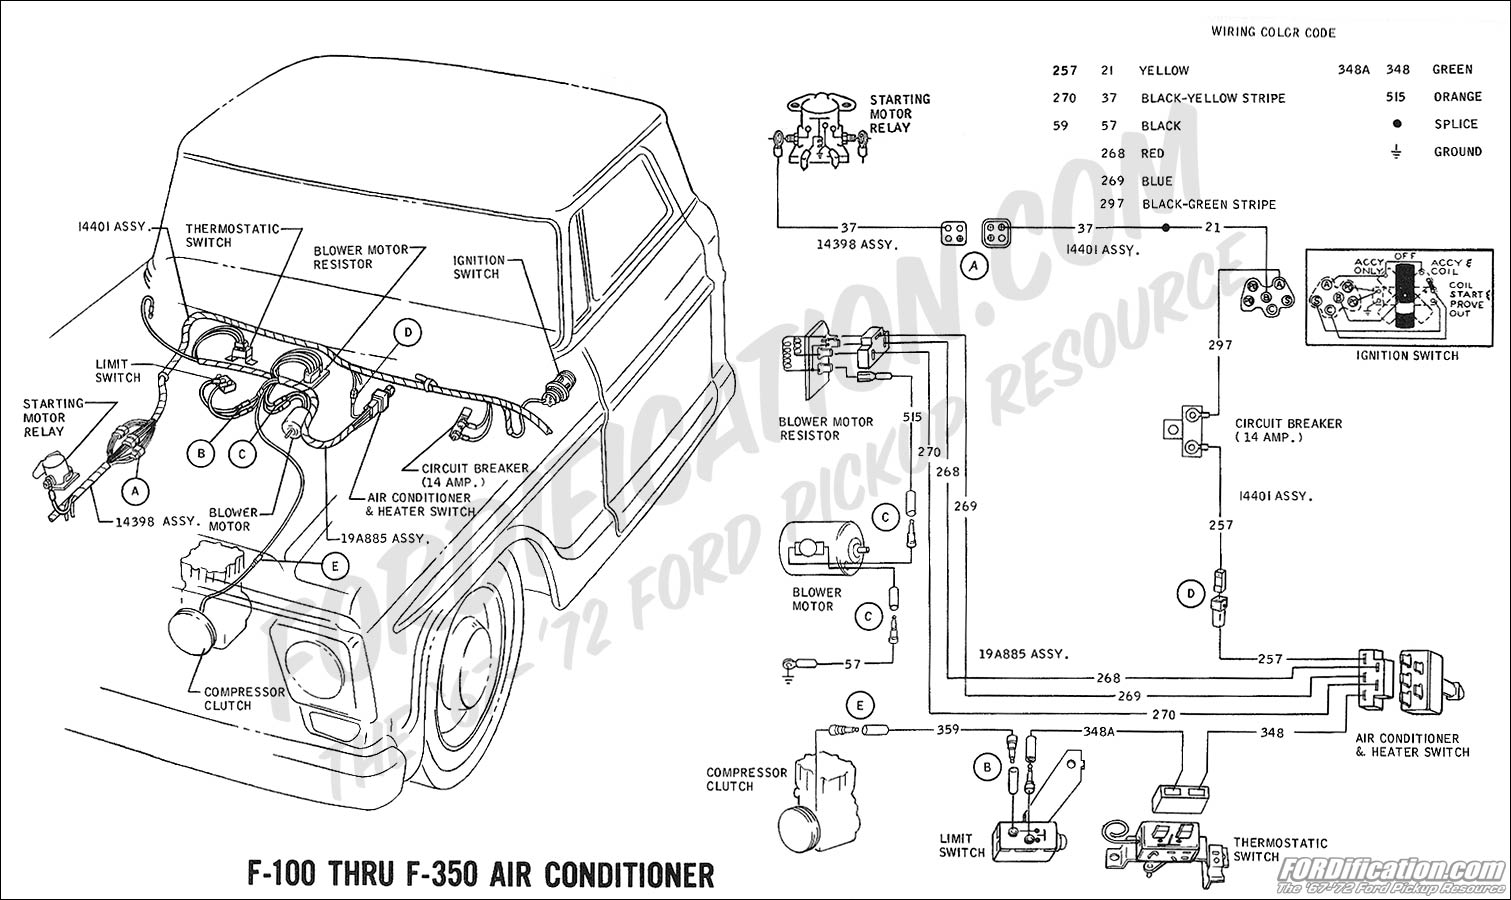 wiring_69ac 1983 ford f150 wiring diagram f150 alternator wiring diagram 1979 ford f150 wiring diagram at gsmportal.co